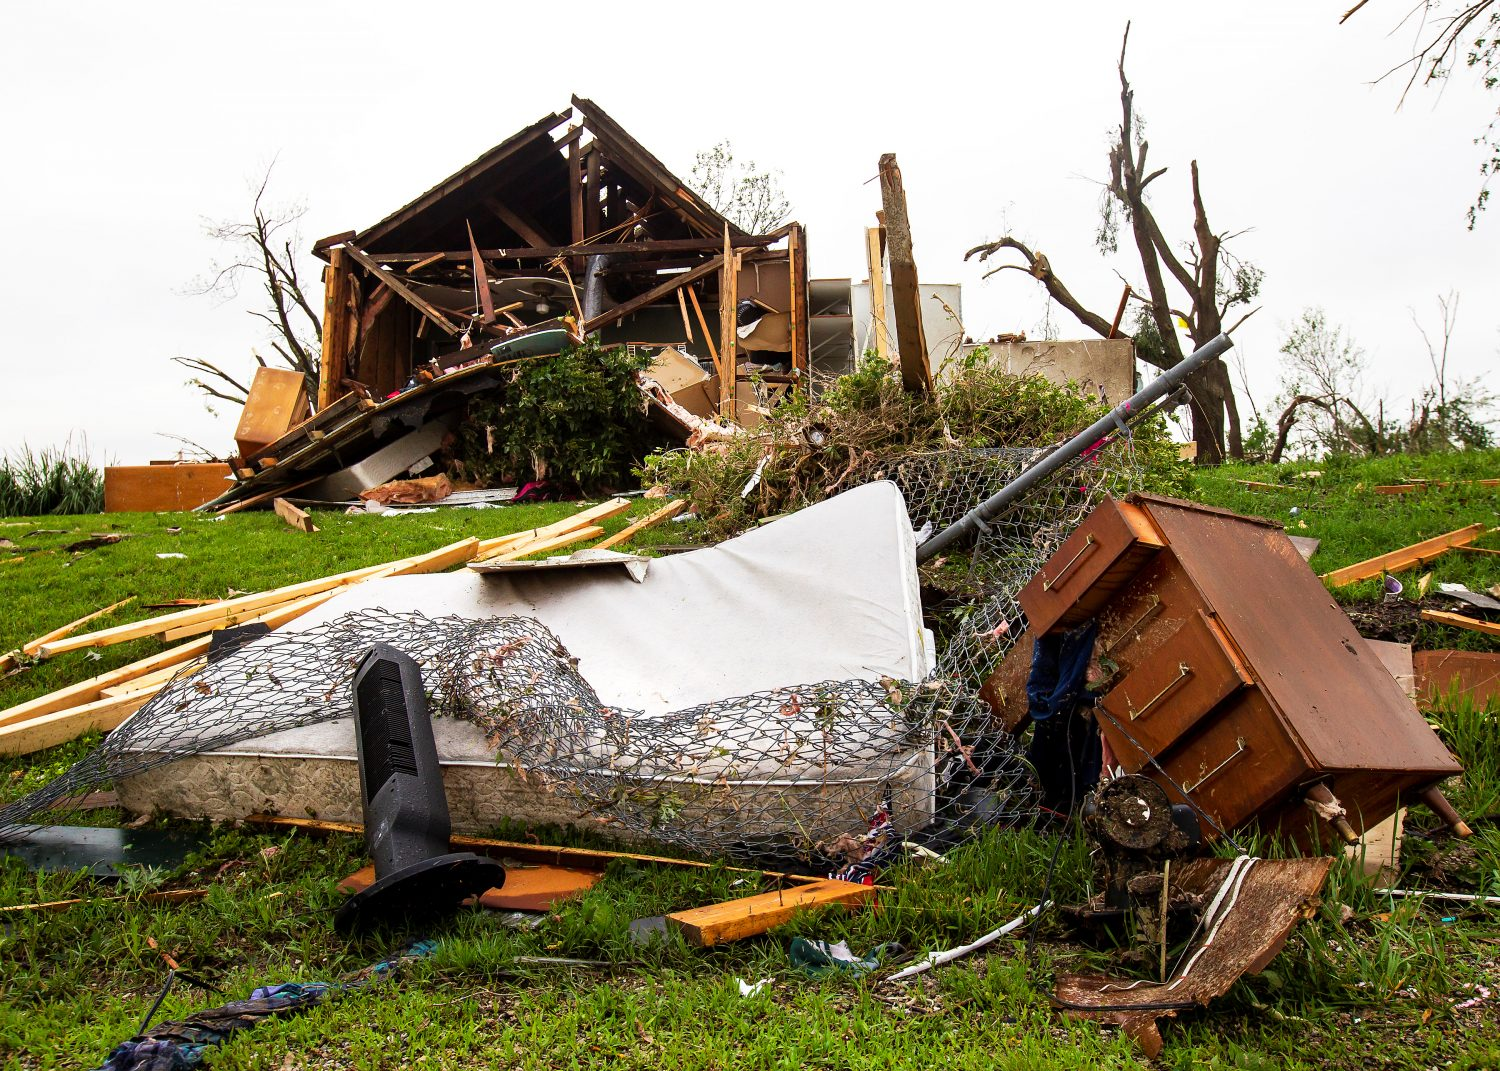 A mattress and dresser drawer are among the debris scattered on a lawn near a damaged house after several tornadoes reportedly touched down, in Linwood, Kansas, U.S., May 29, 2019. REUTERS/Nate Chute